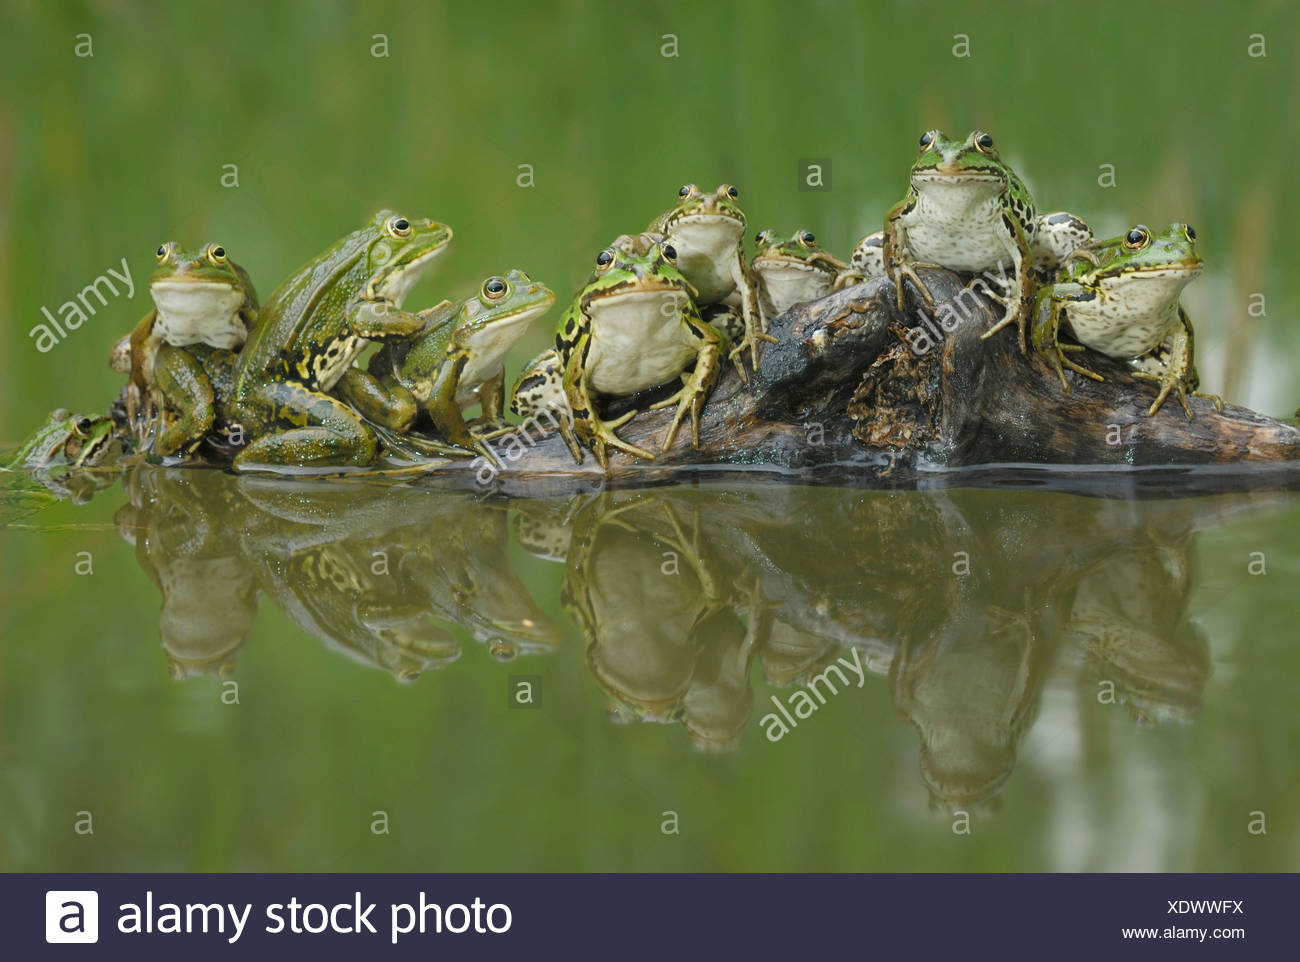 A group of edible frogs (Rana esculenta) with reflection in a pool - Stock Image